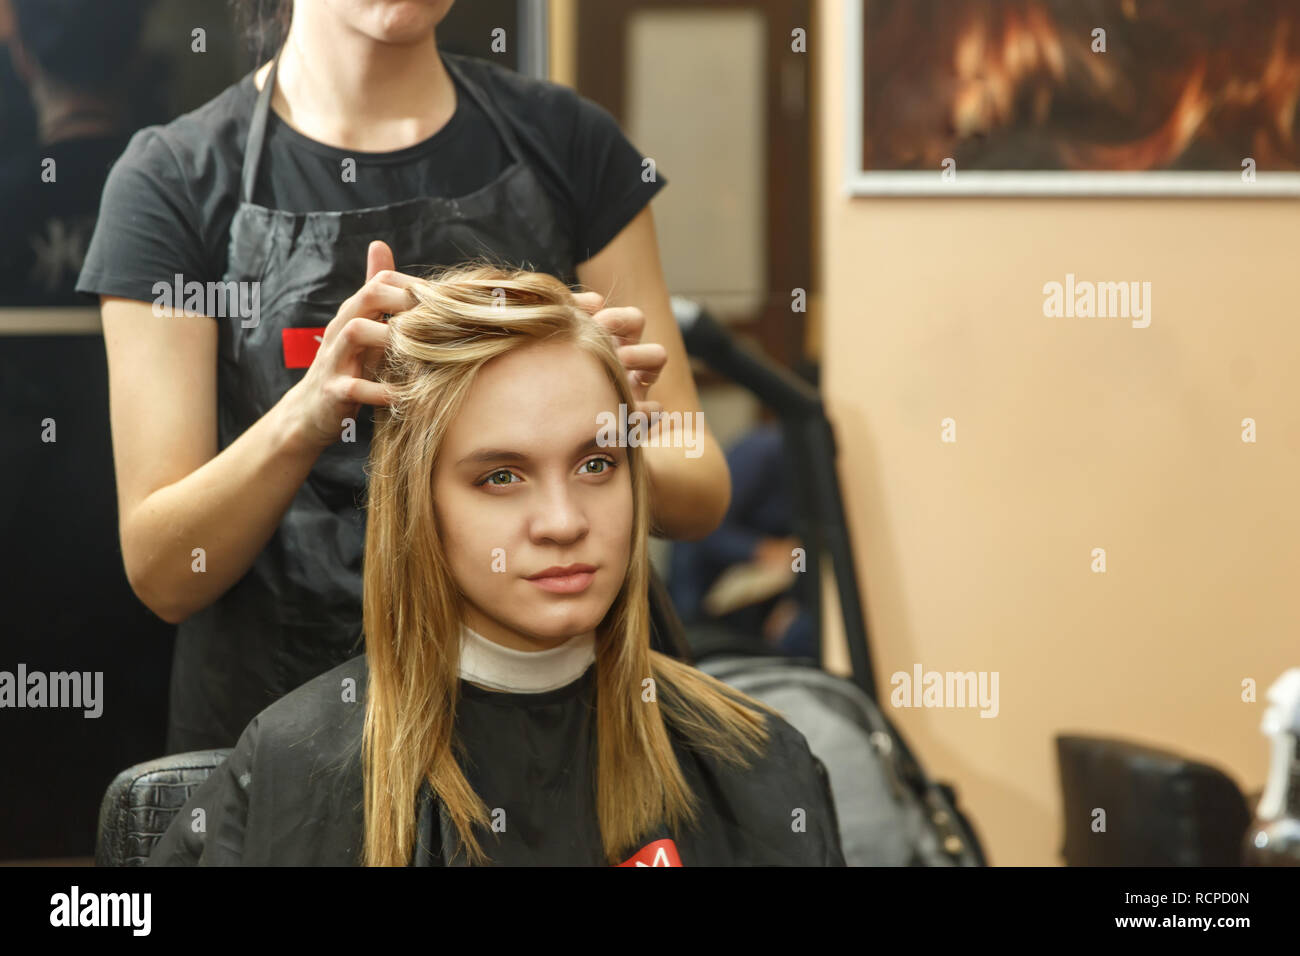 Professional hairdresser dyeing hair of her client in salon. Haircutter dry hair with hairdrier. Selective focus. - Stock Image